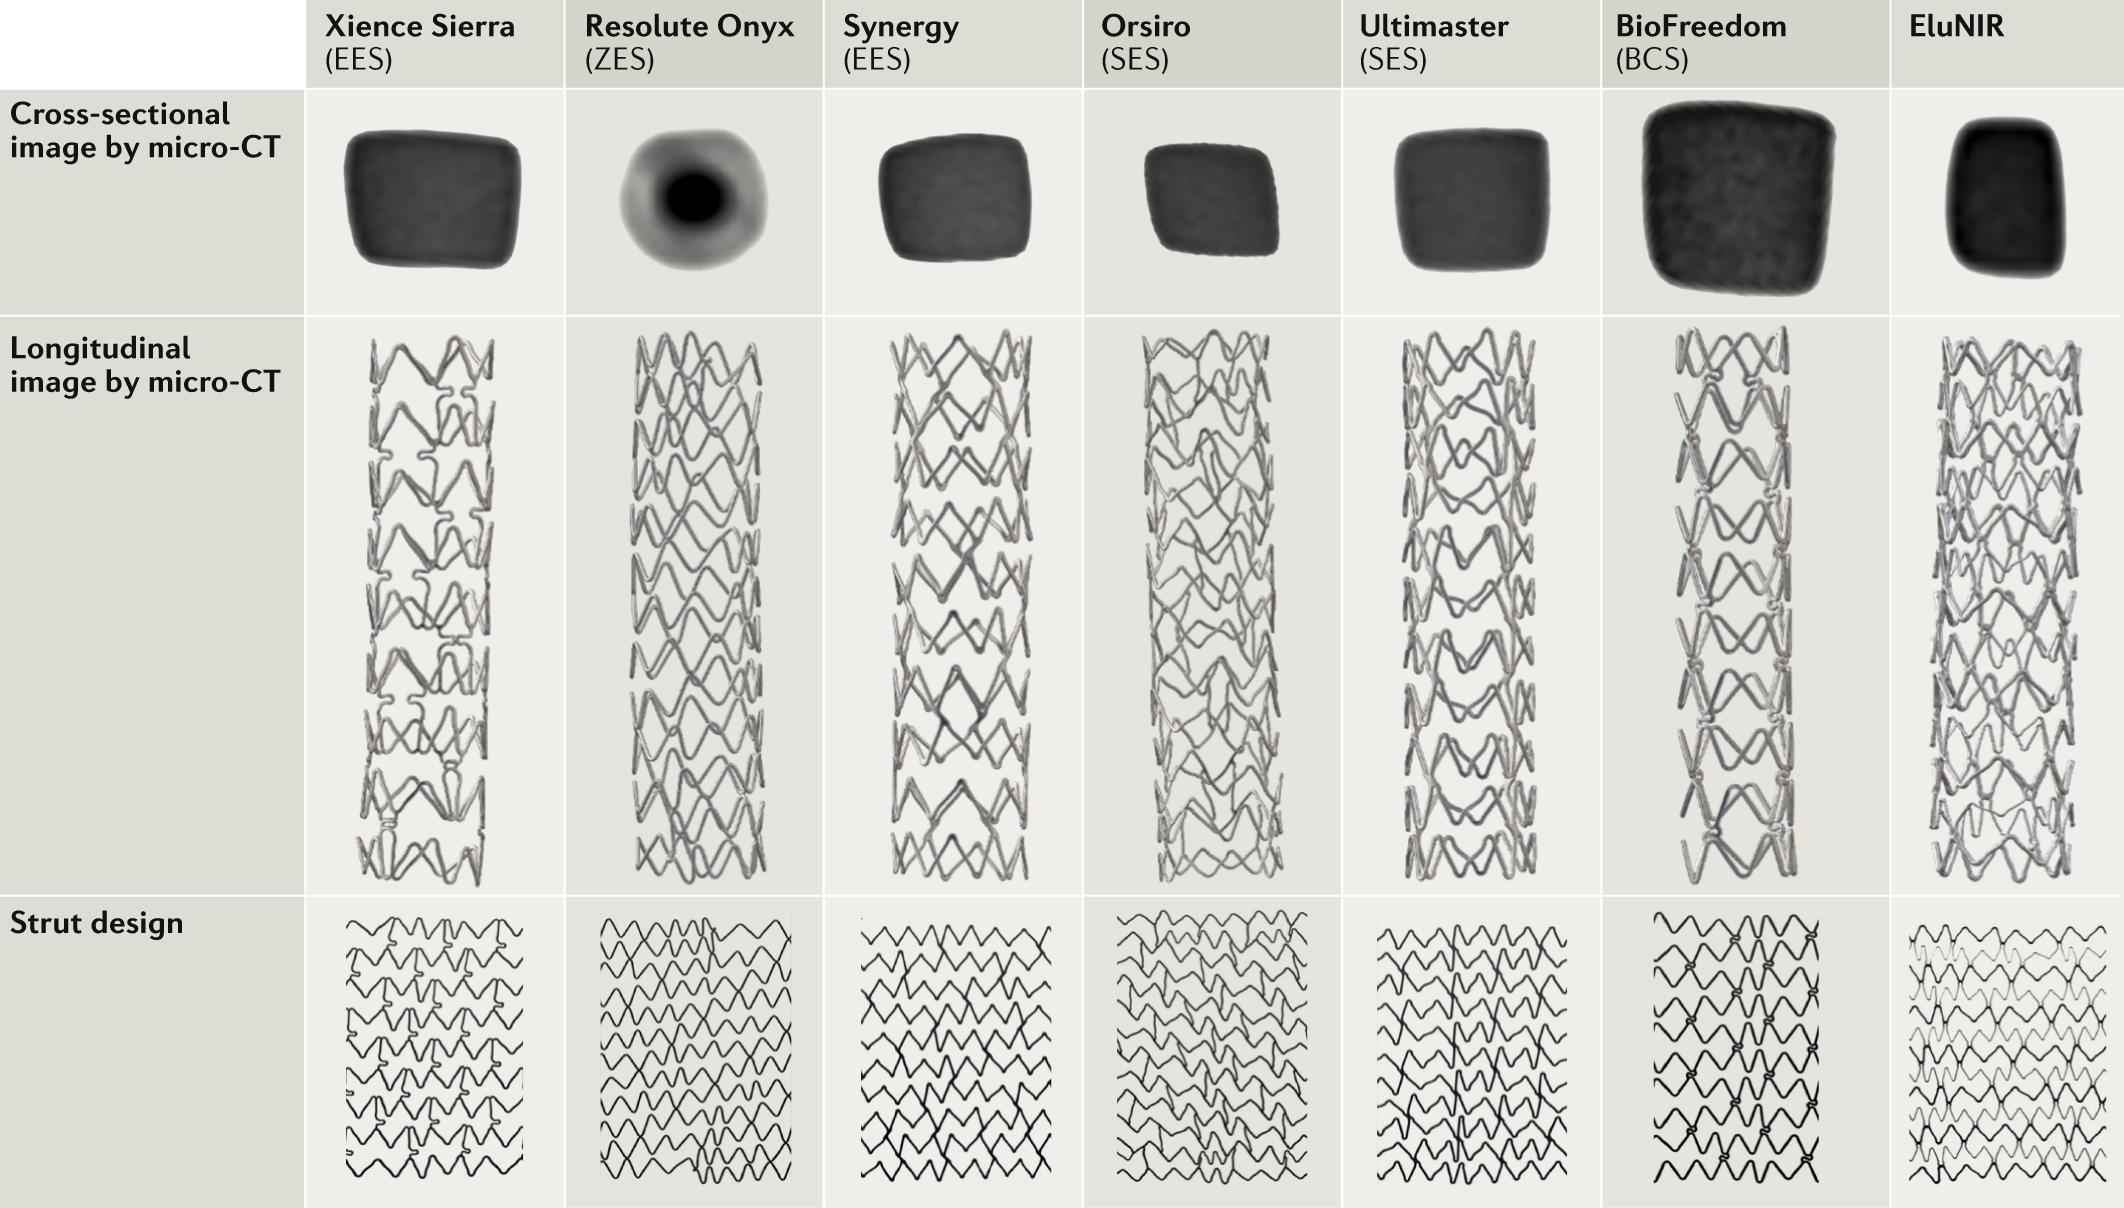 Drug-eluting coronary stents: insights from preclinical and